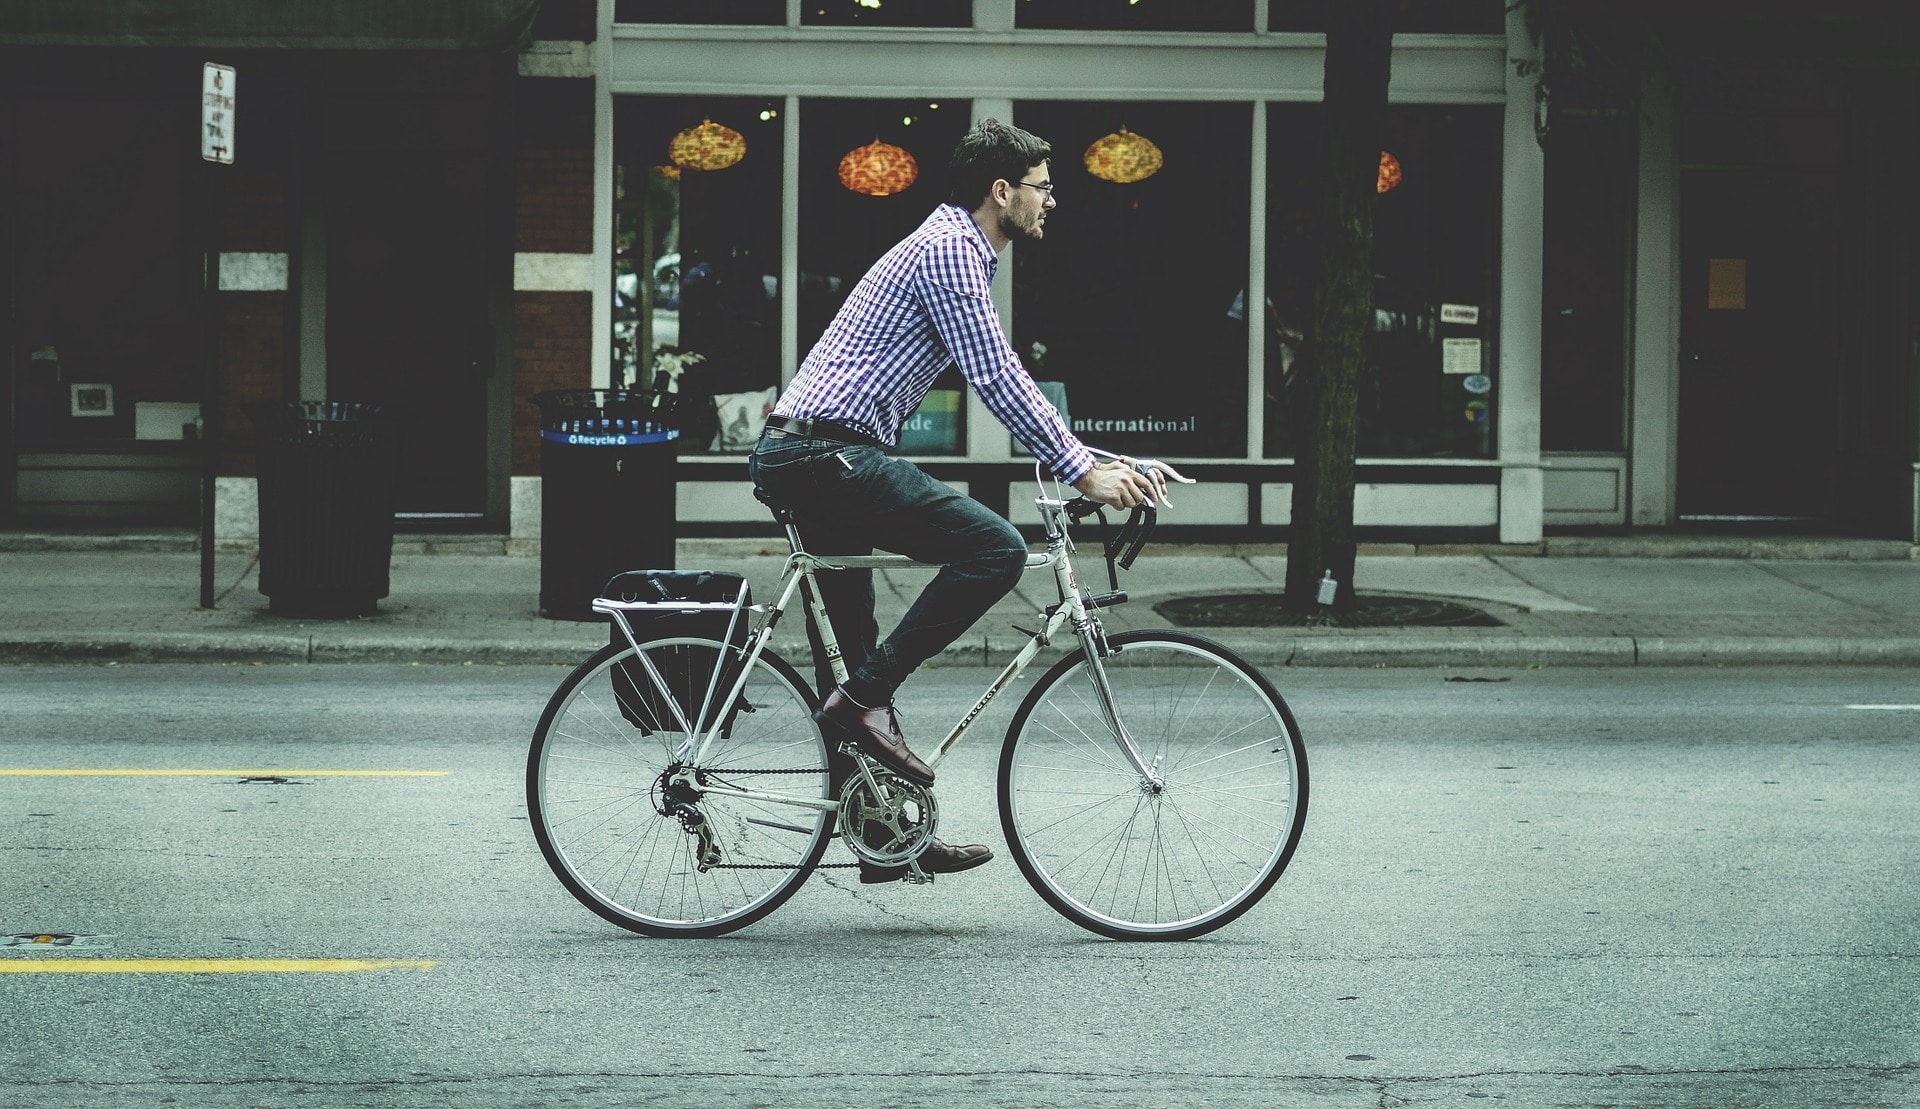 10 Curious and Underrated Things worth Keeping in Mind While Cycling